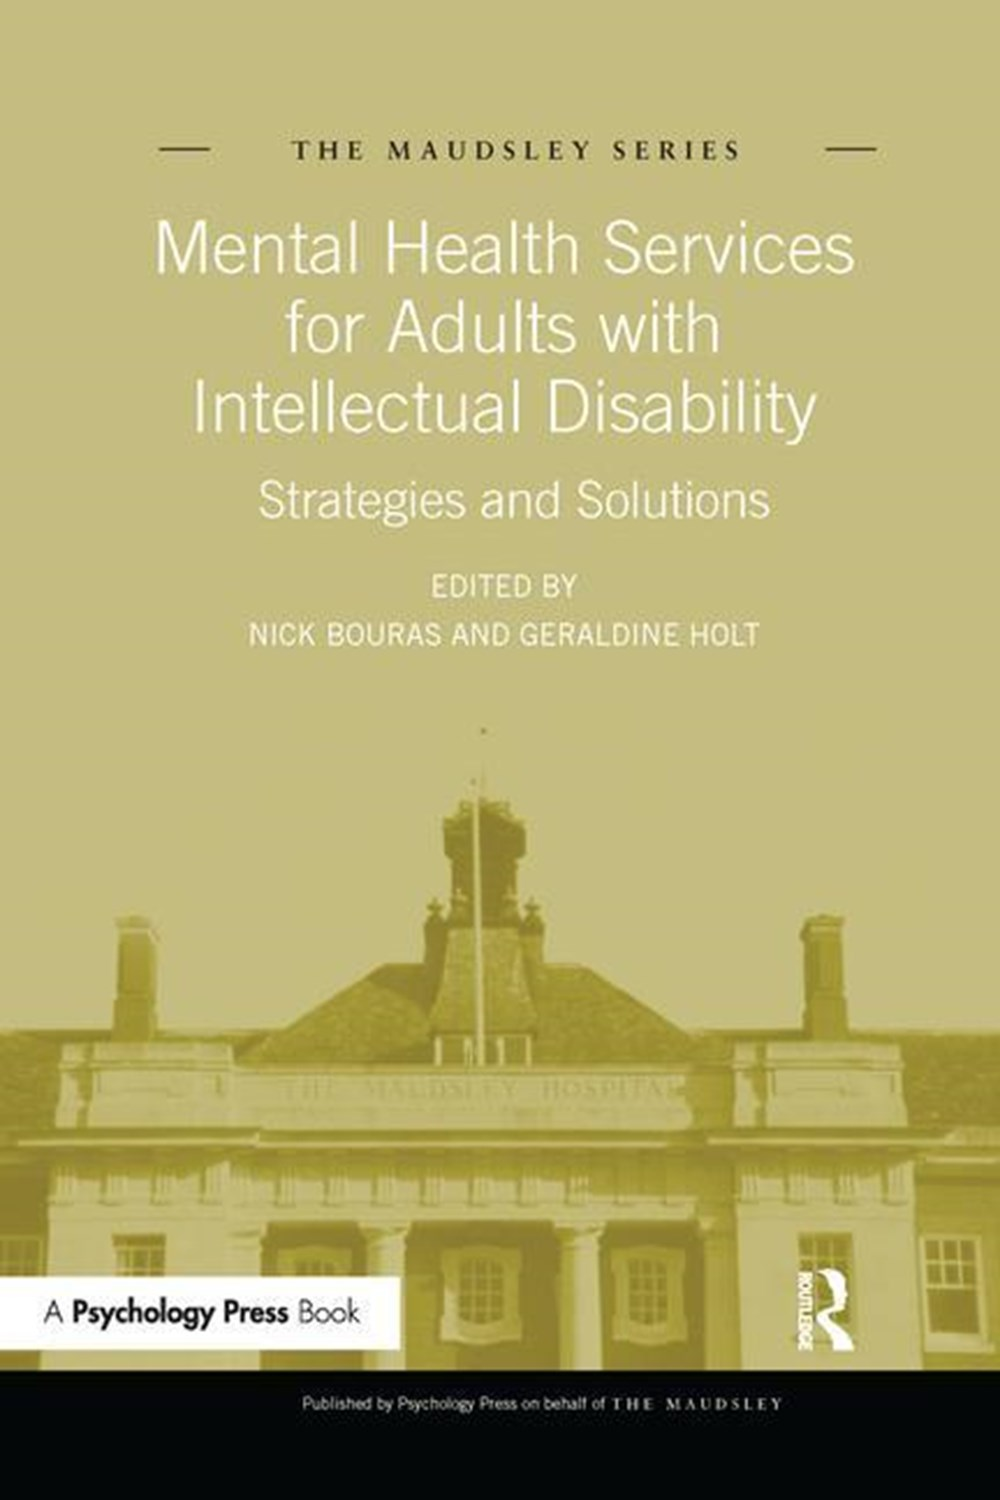 Mental Health Services for Adults with Intellectual Disability Strategies and Solutions